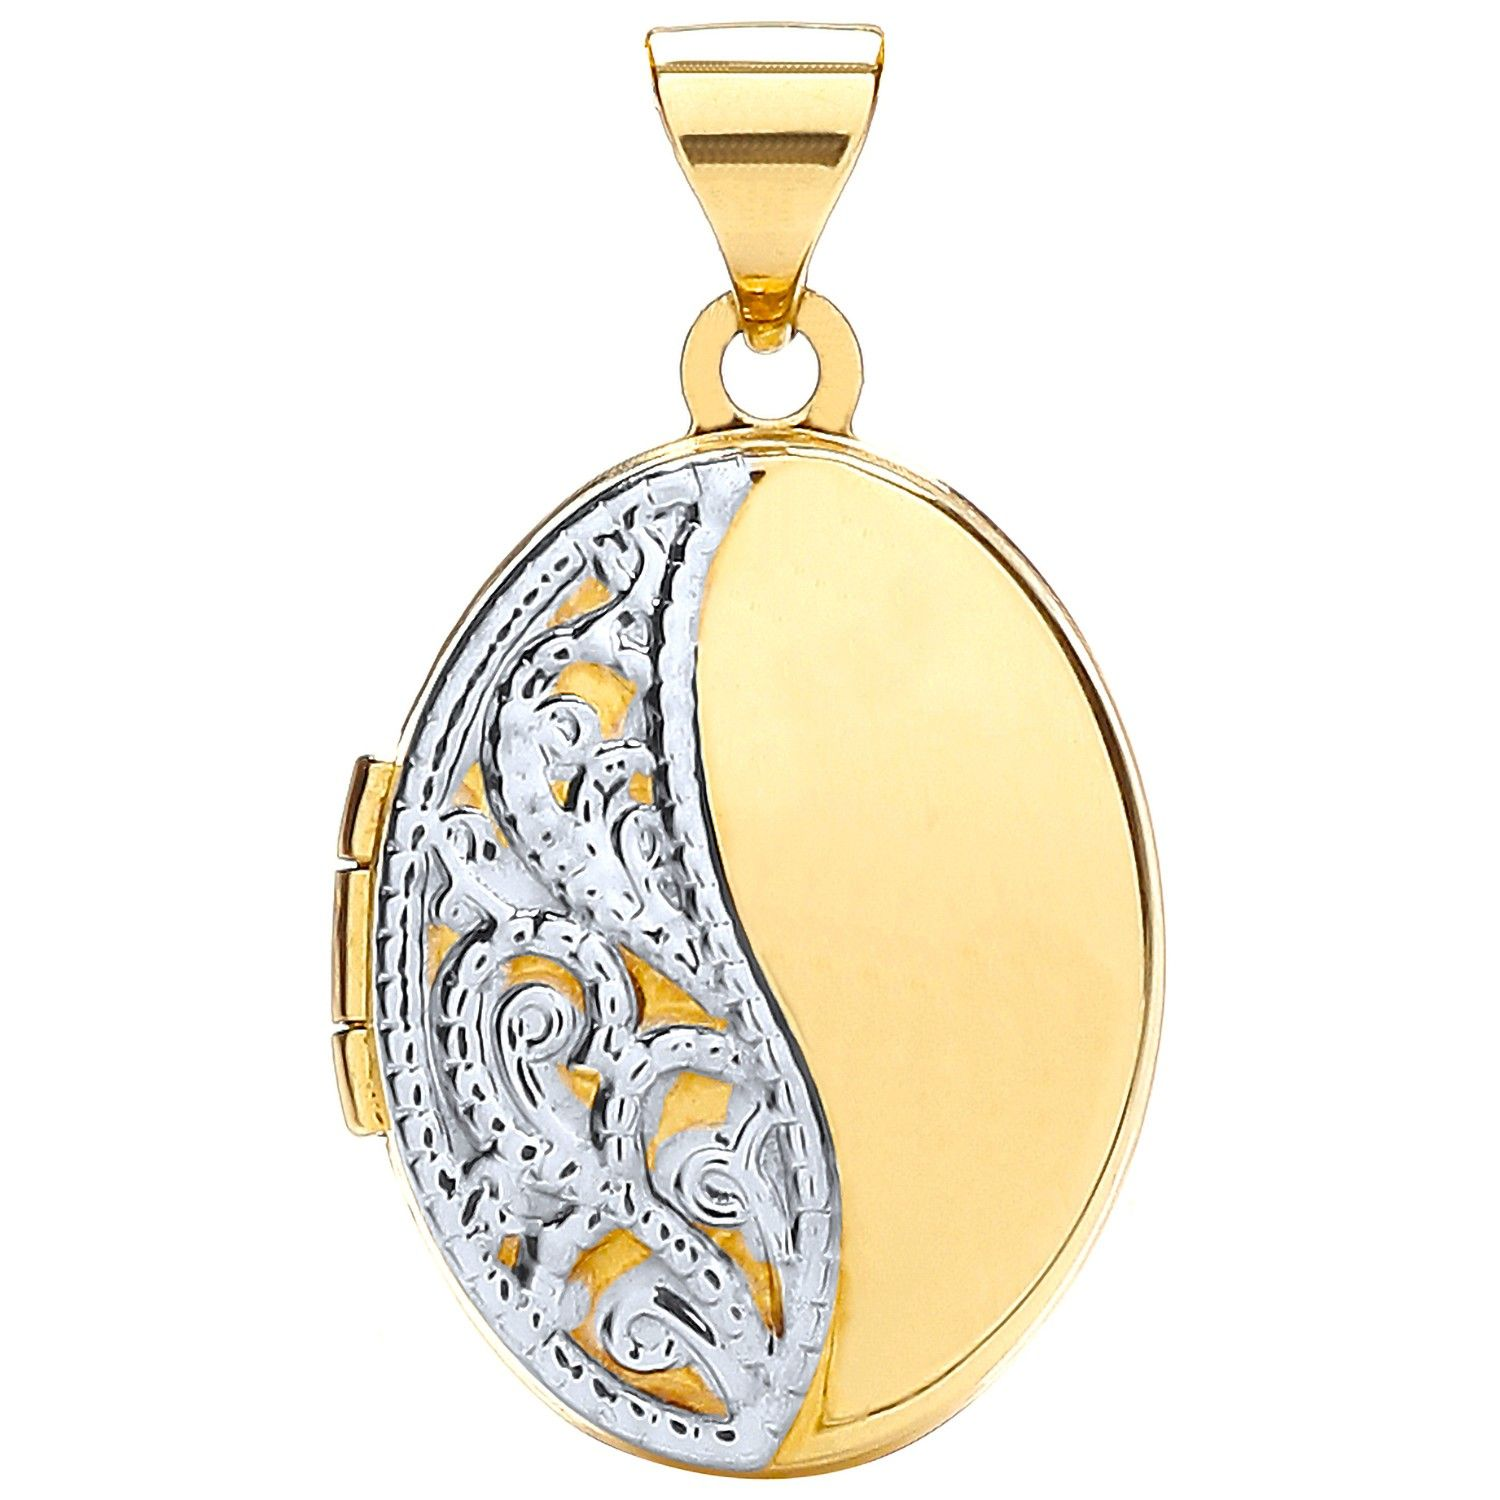 9ct Yellow and White Gold Oval Shaped Locket Gold